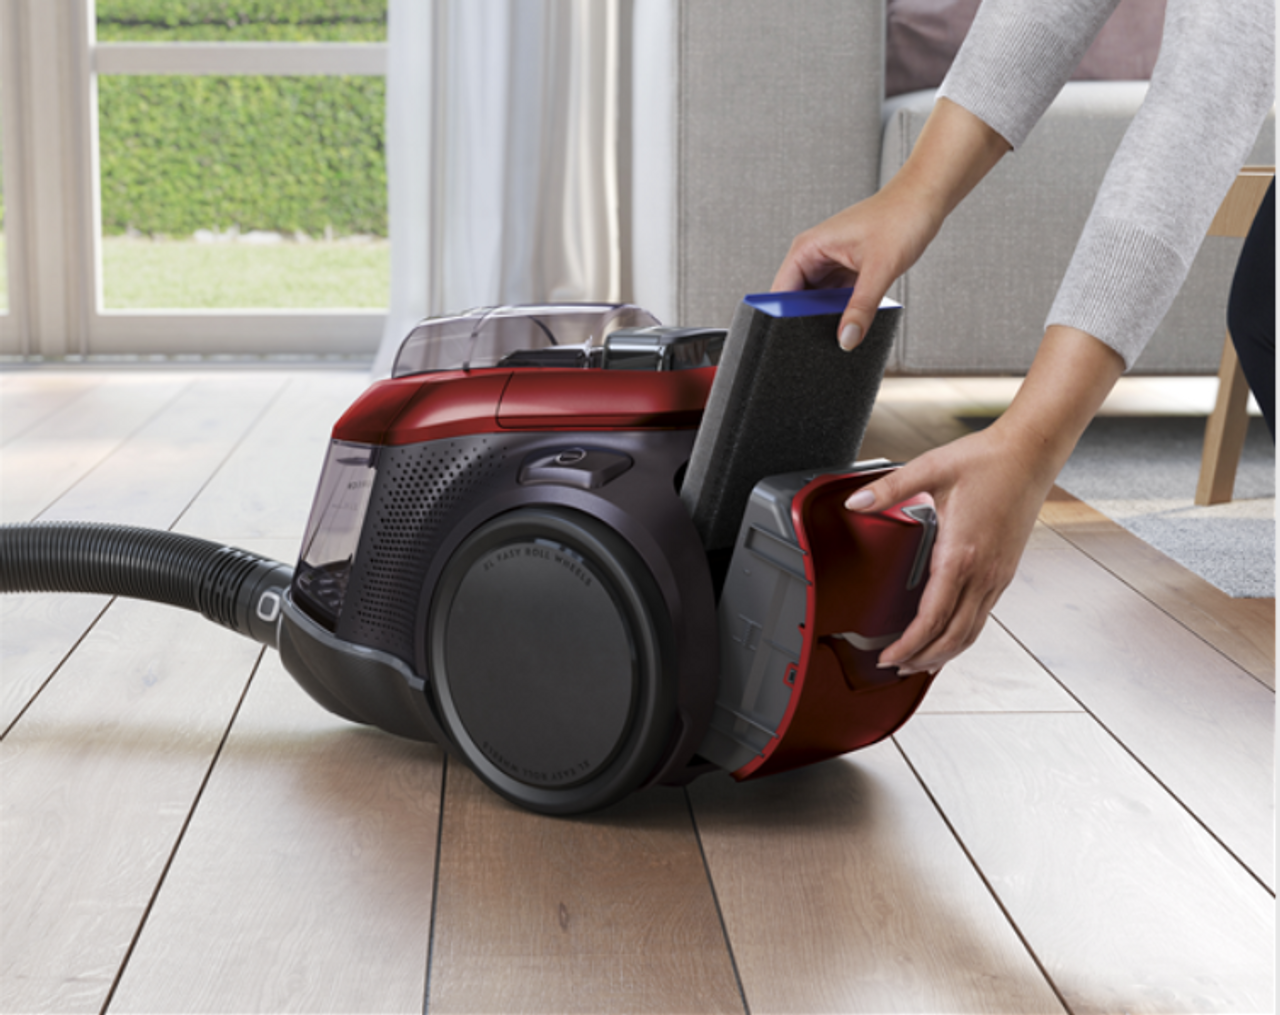 Electrolux PC91-ANIMA Pure C9 Animal 1700W Bagless Vacuum Cleaner - Chili Red